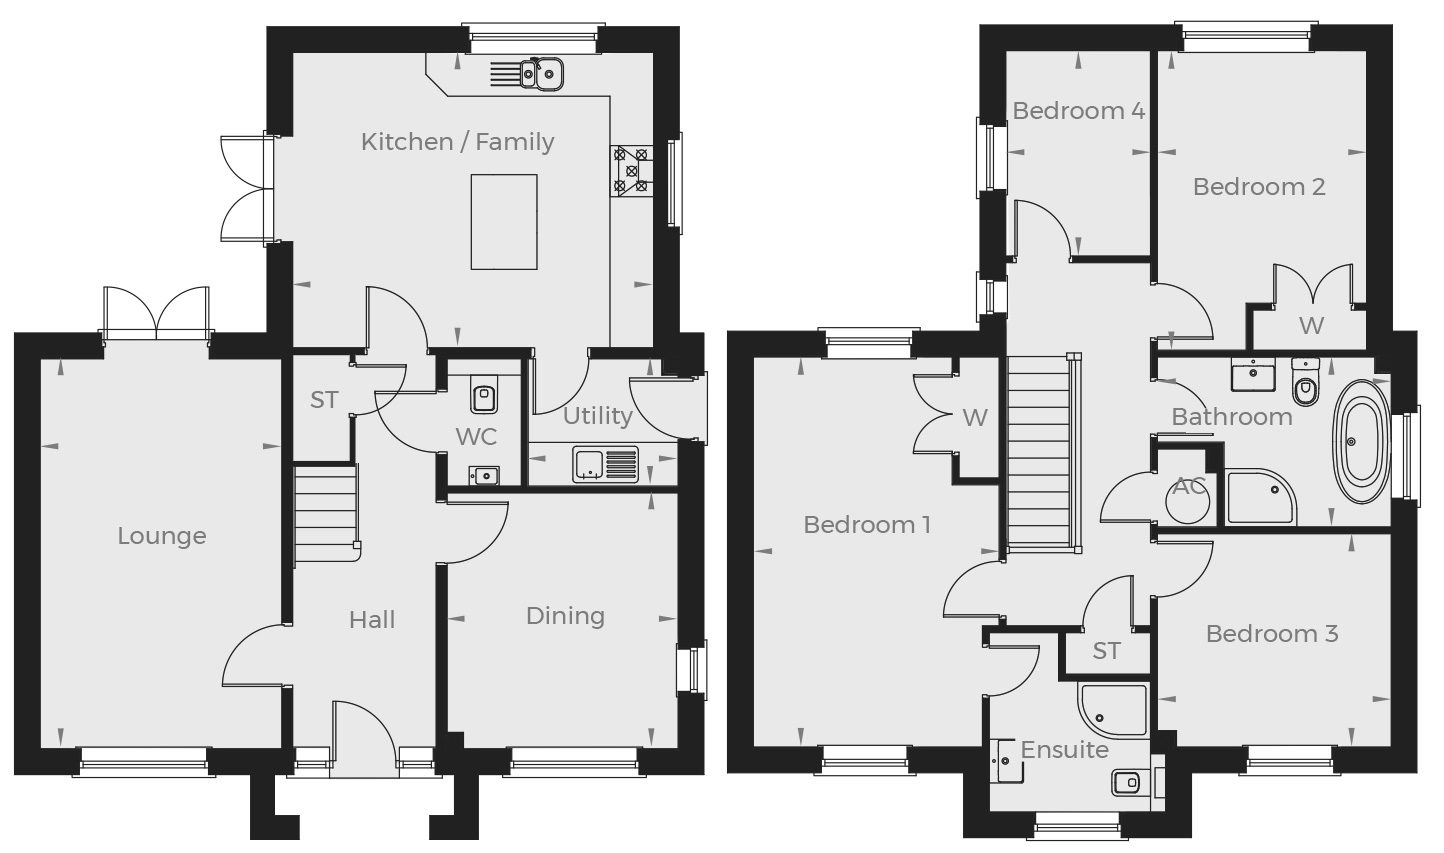 The-Denford-Floor-Plan.jpg